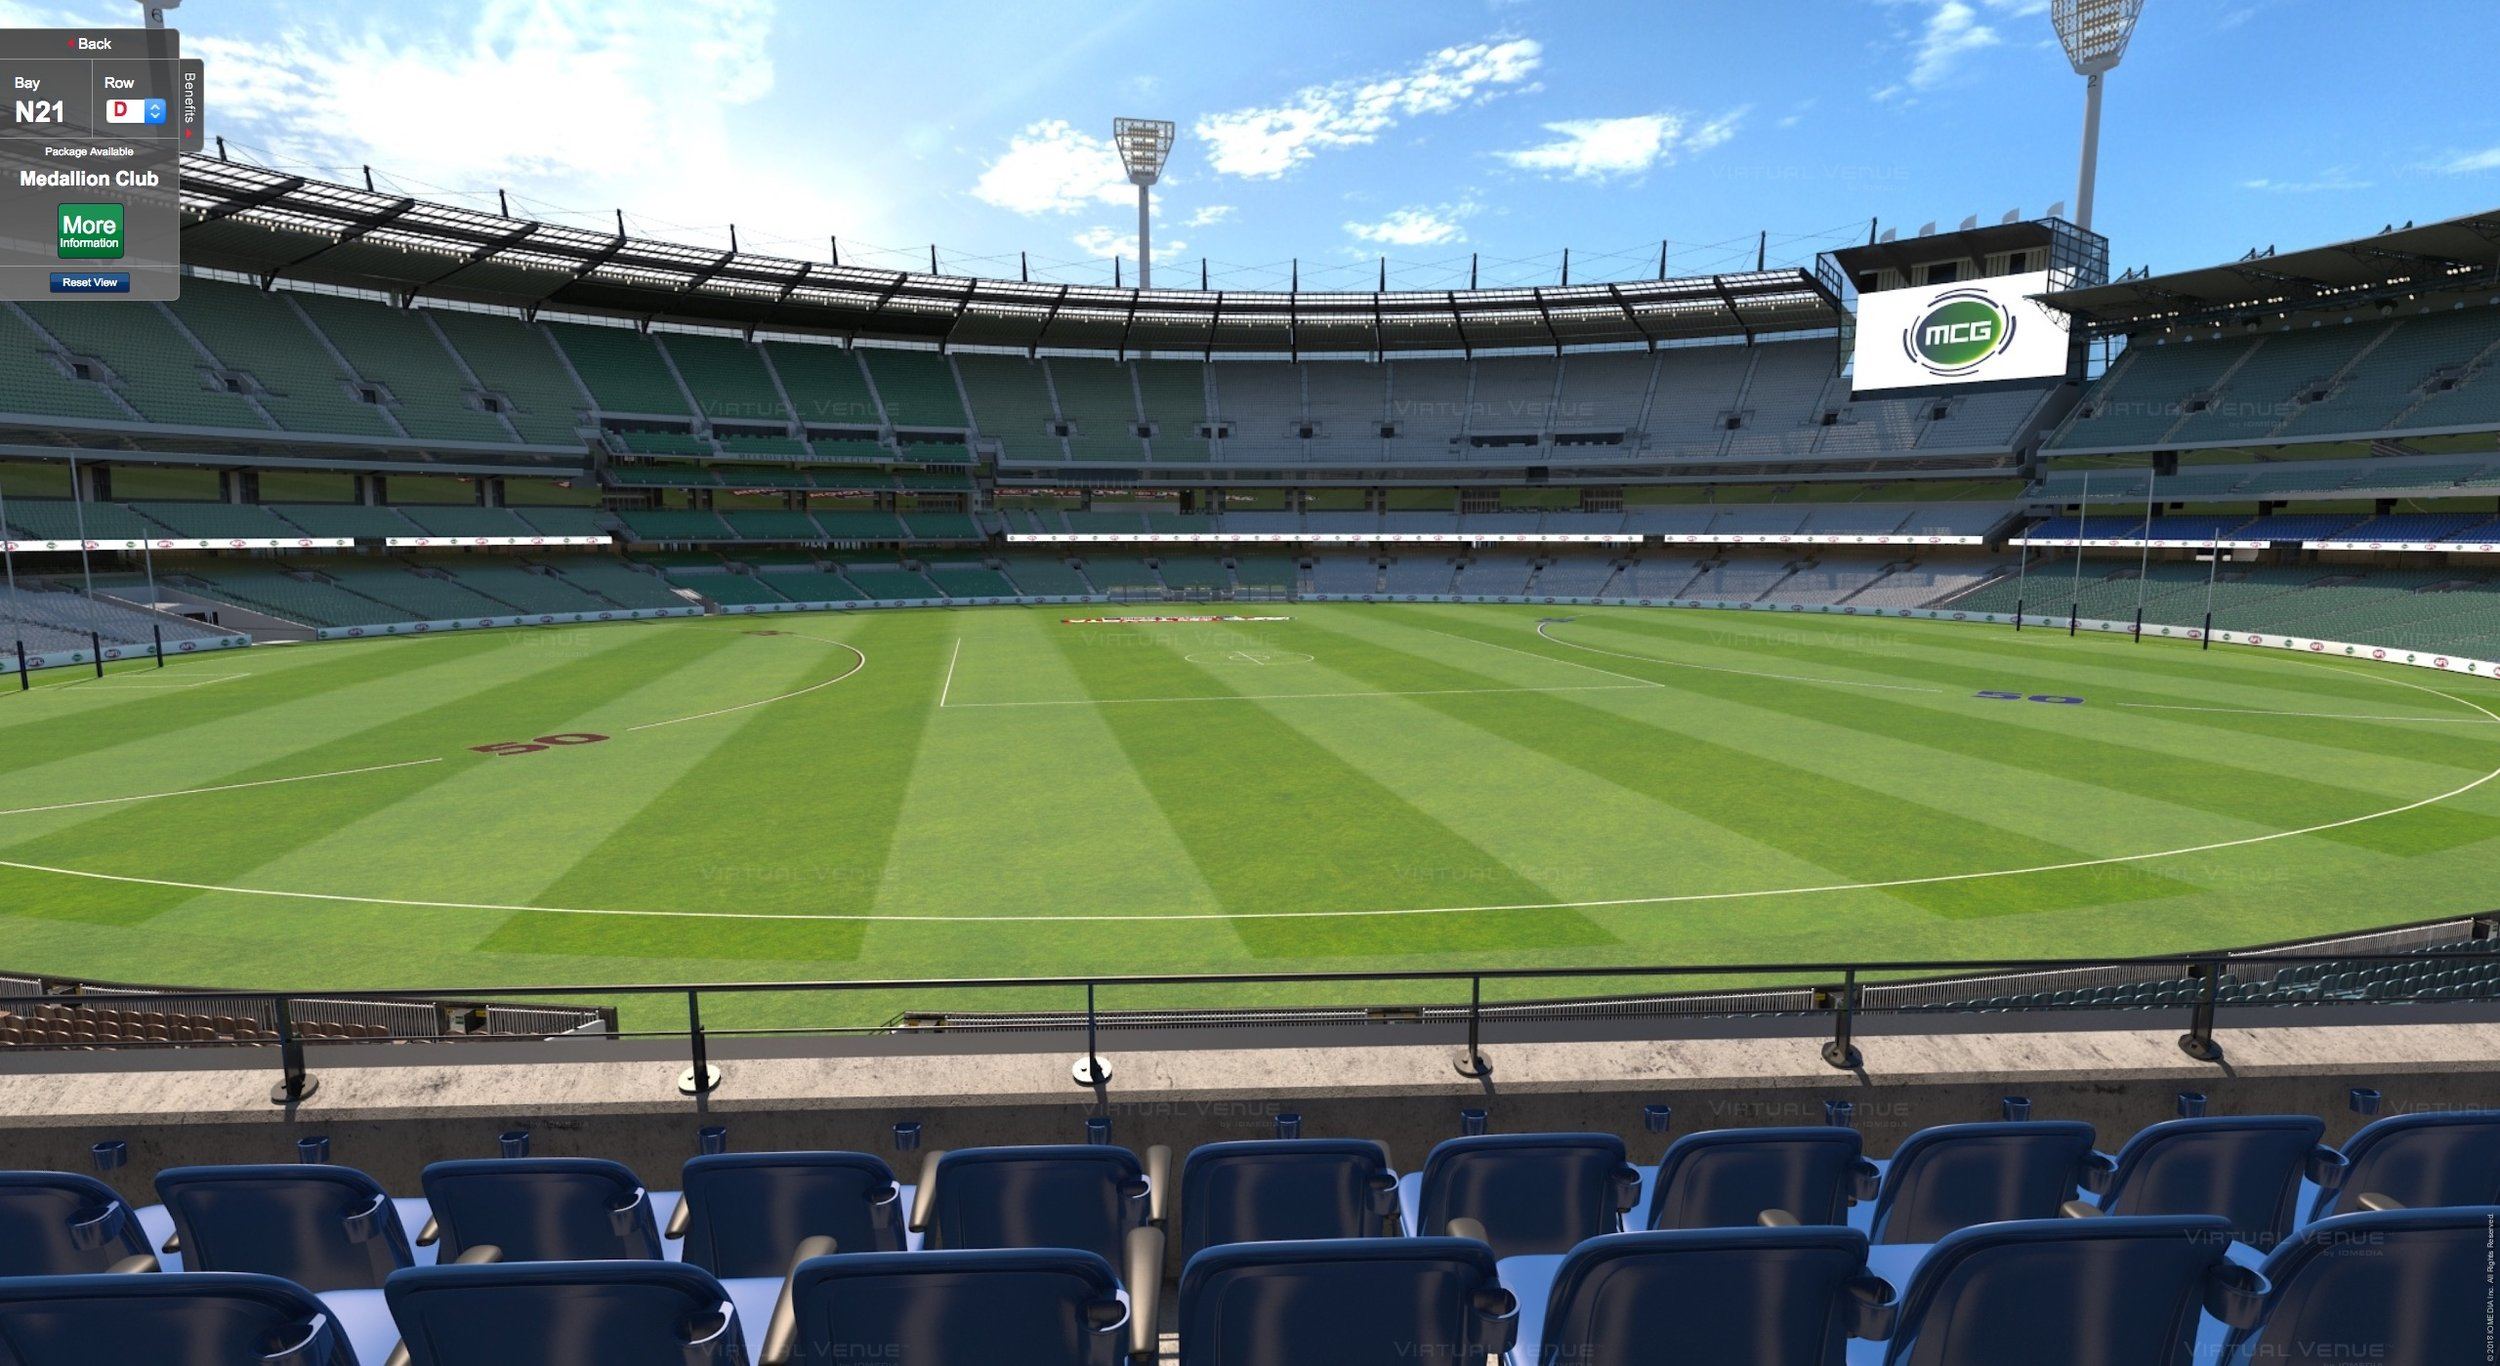 Geelong v Essendon MCG Medallion Club seating